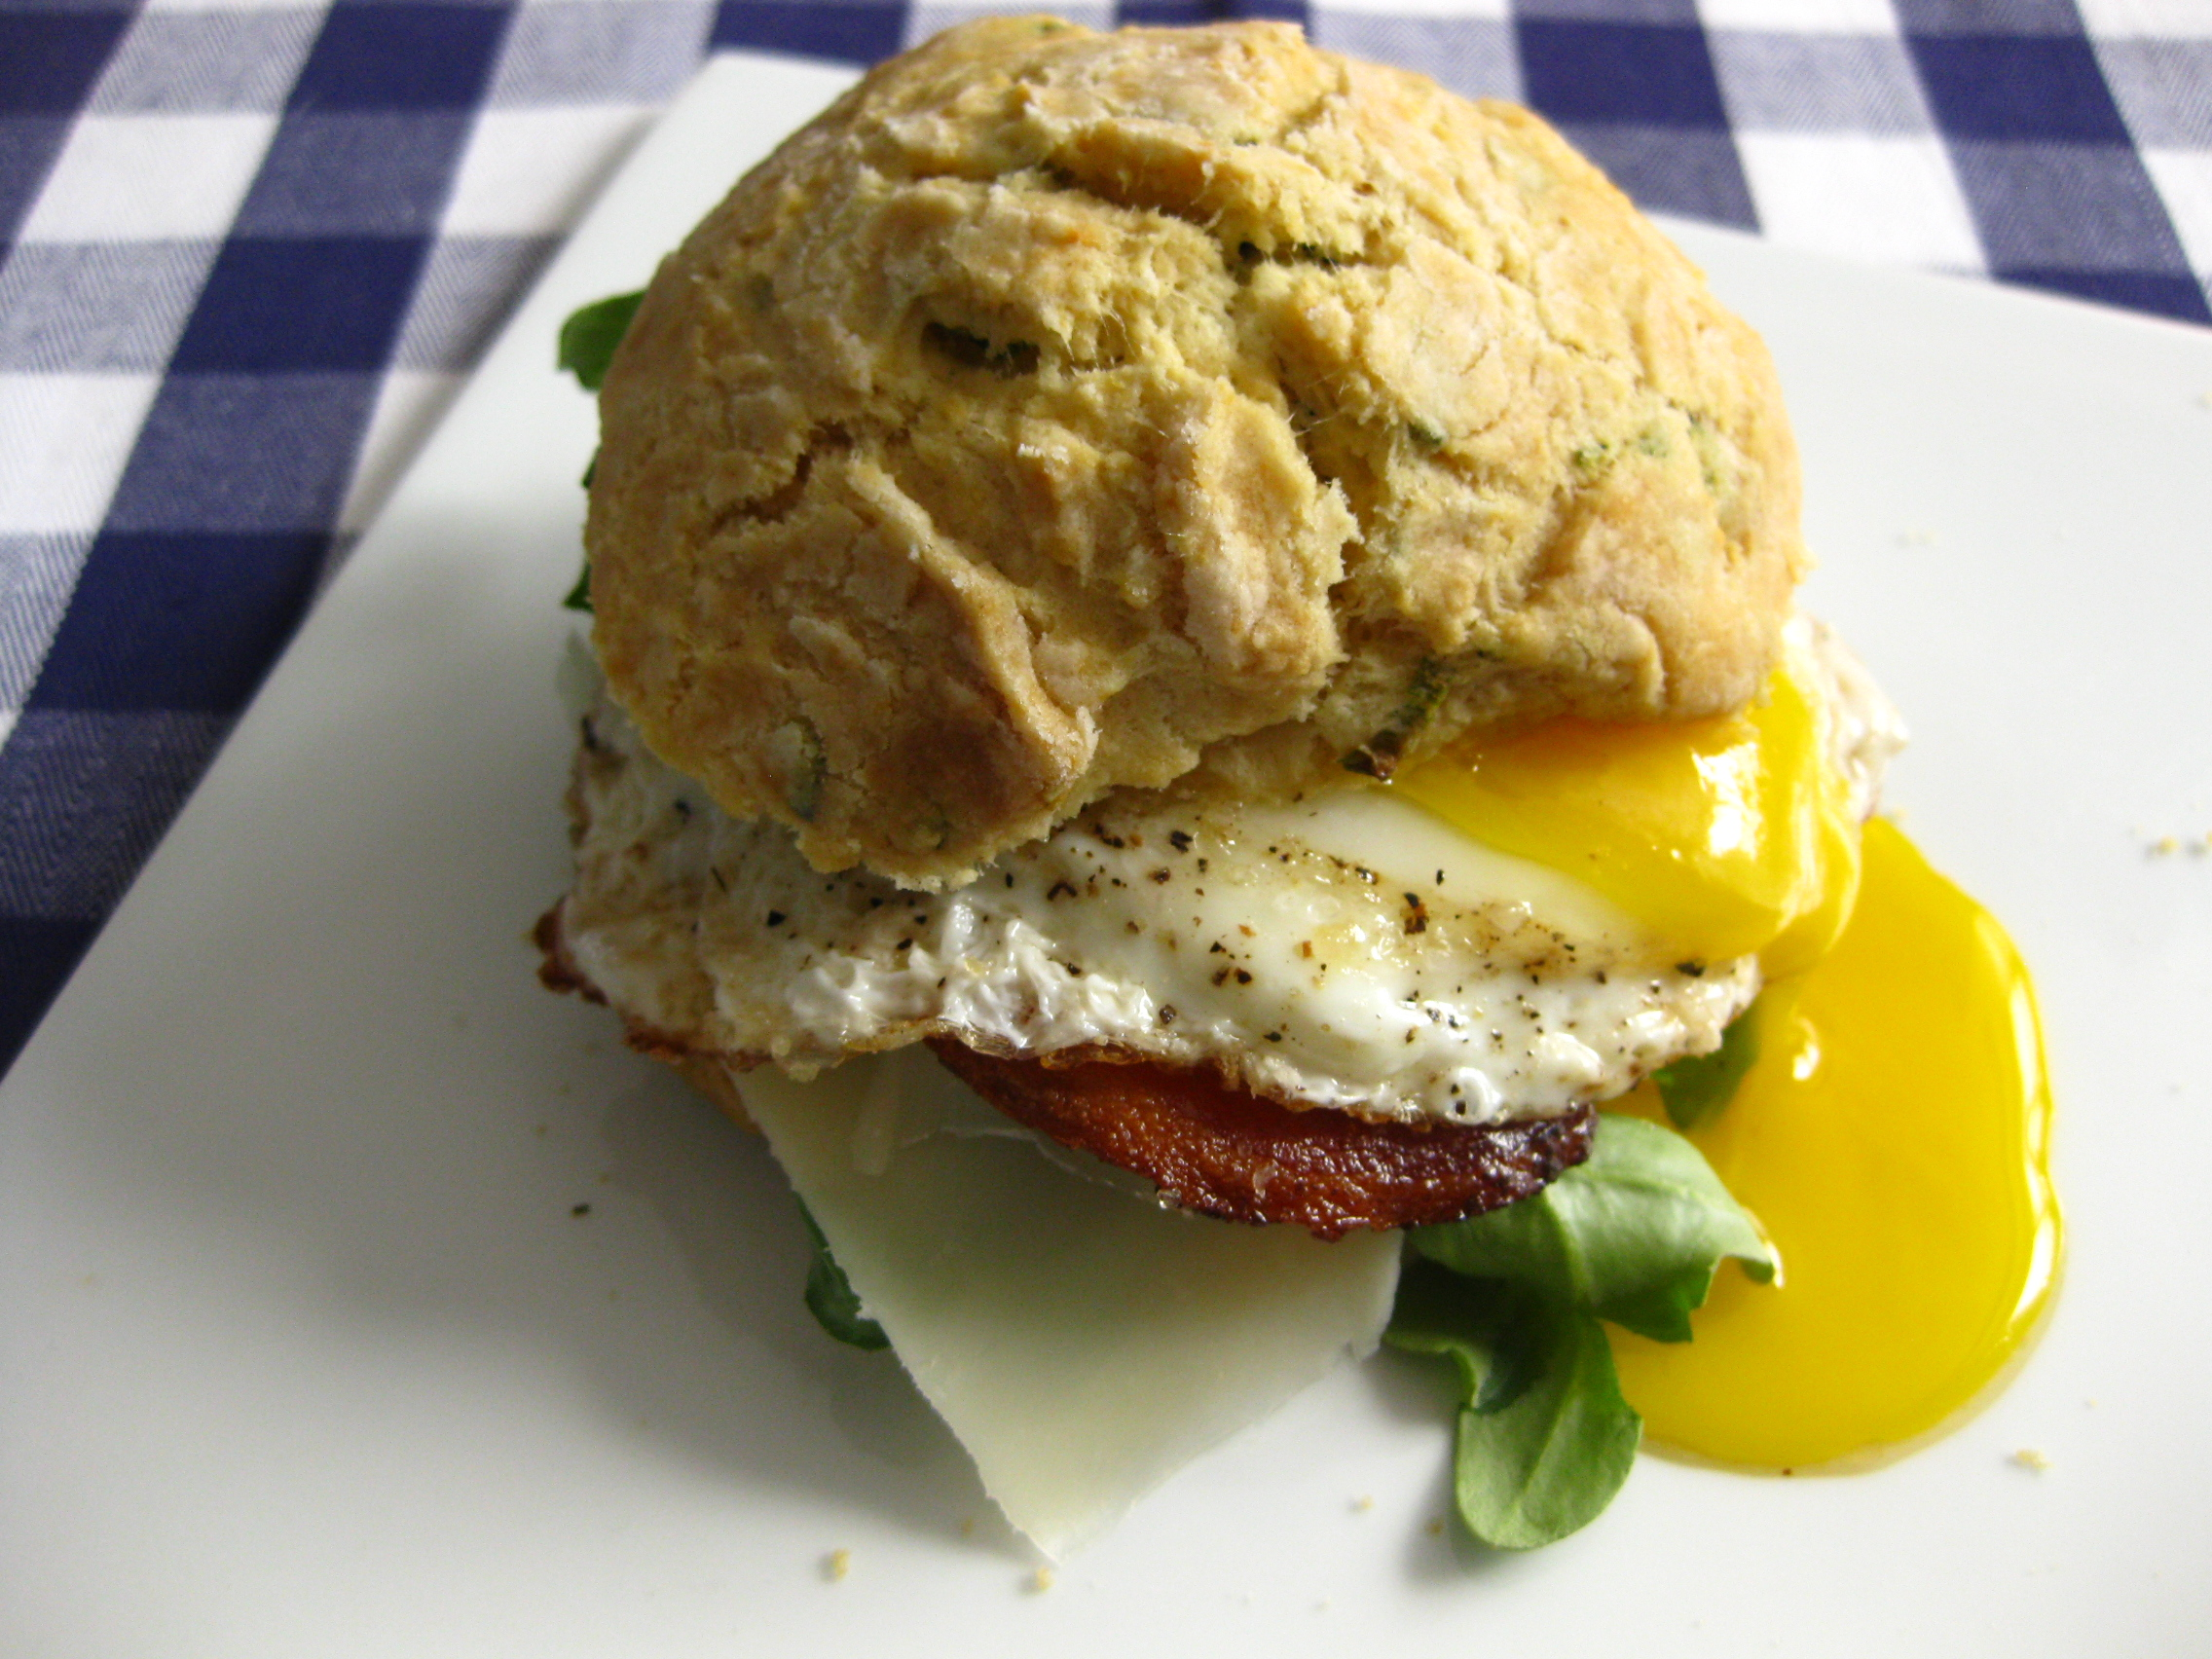 Sage Biscuits and Fried Egg Sandwiches